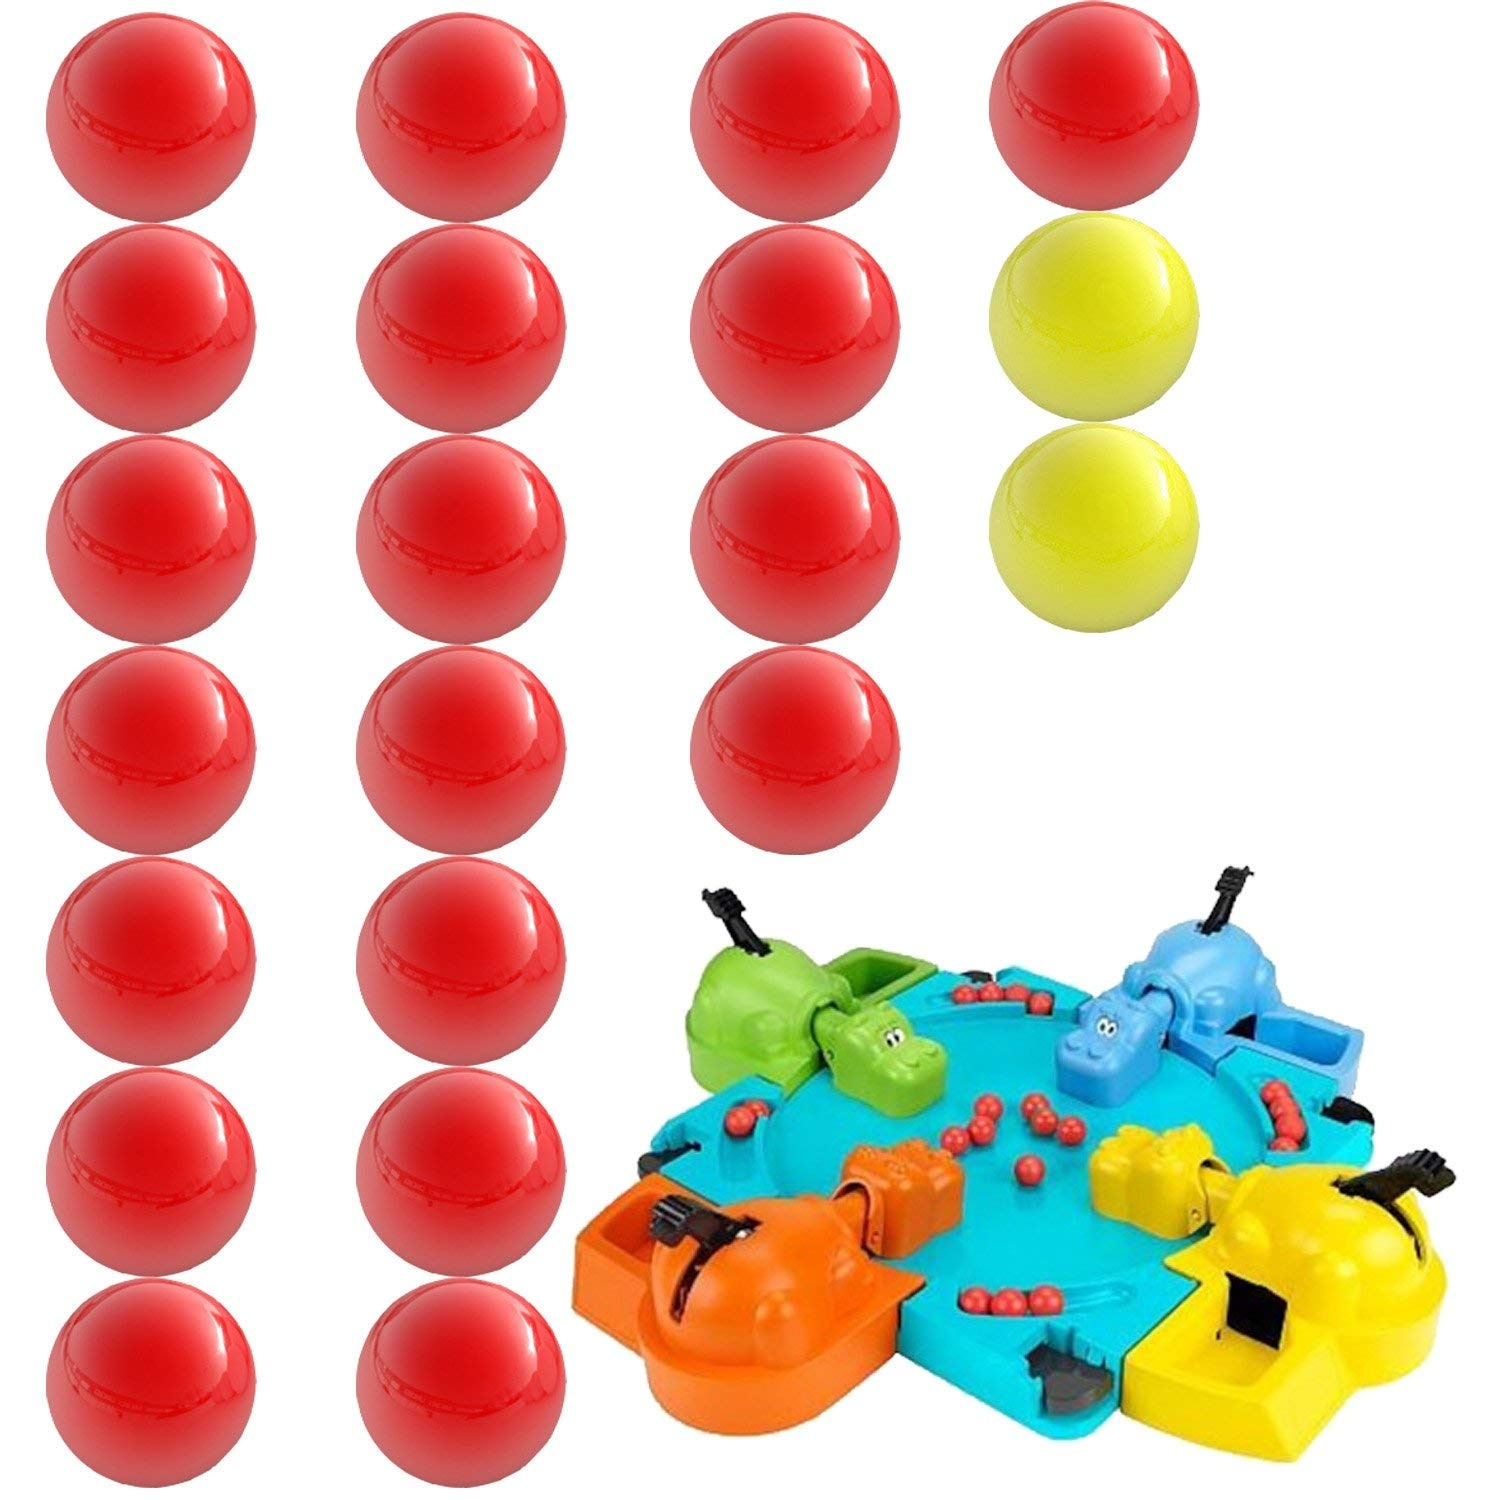 Hungry Hungry Hippos Compatible Replacement Marbles 21 Pieces 19 Red And 2 Yellow Perfect Replacement Game Balls By Impresa Products By Impresa Shop Online For Toys In Australia